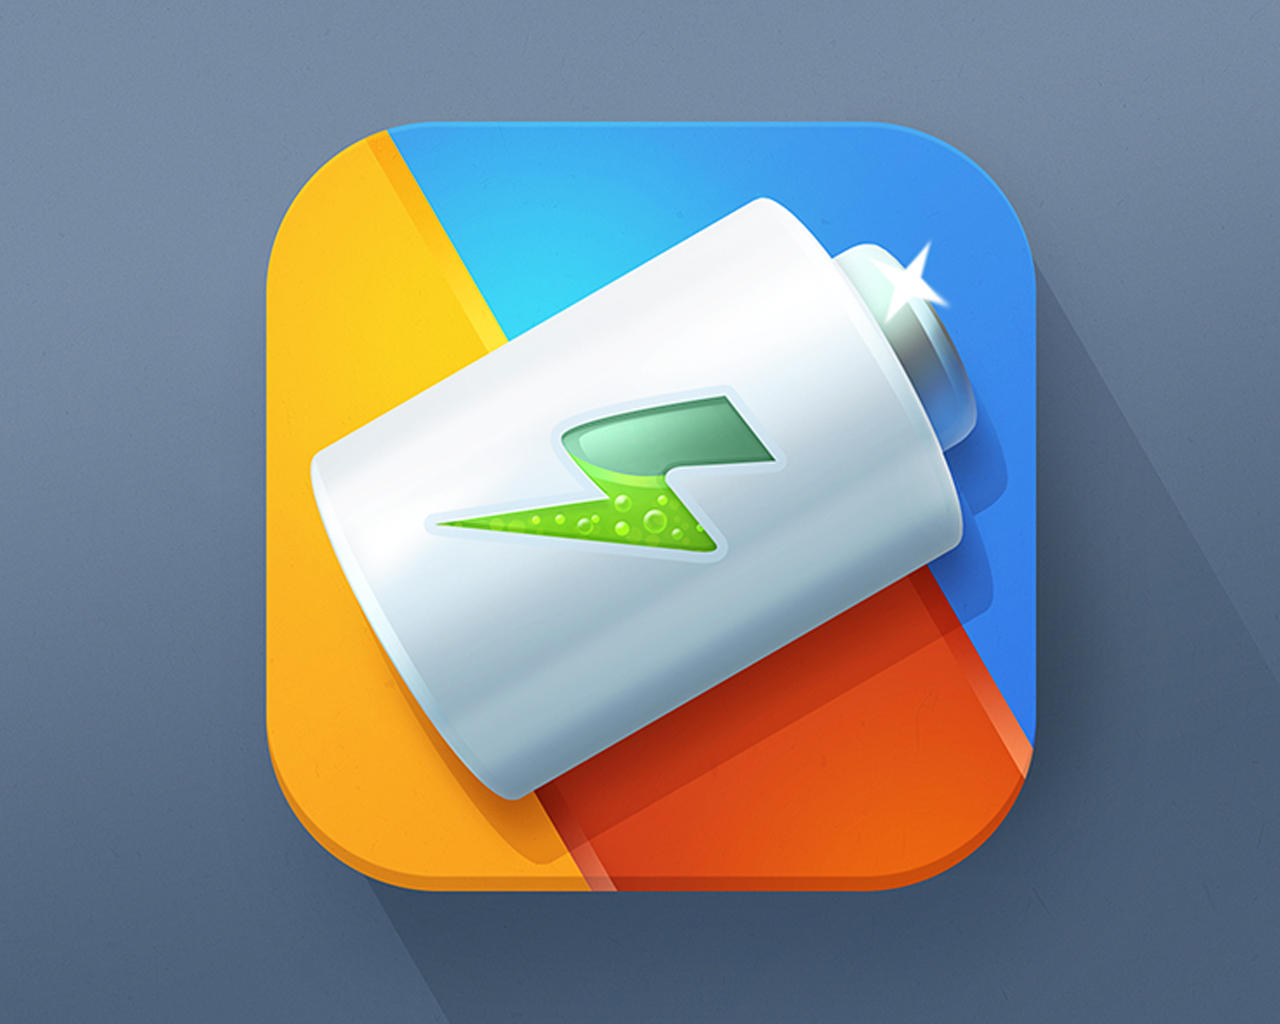 Ios Android Web App Icon Design 2d 3d By Zomorsky On